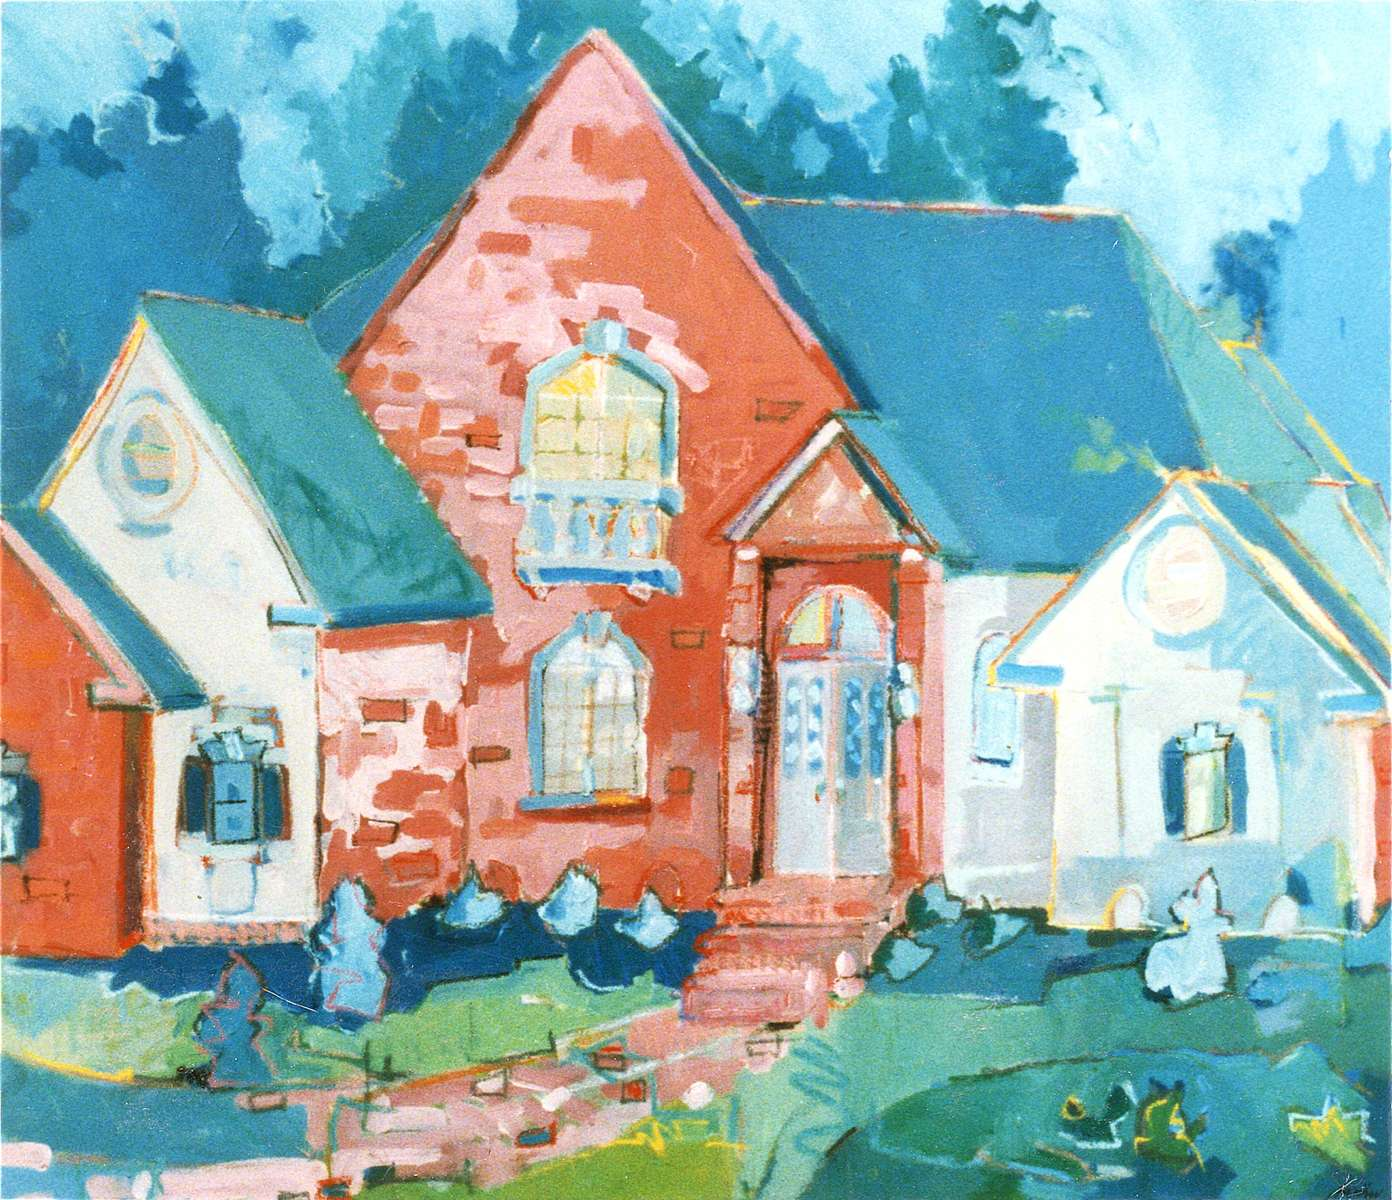 This painting was created and orginally hung in a Southern Living Showcase home in New Bern, NC. The work also was used in a couple of home brochures.